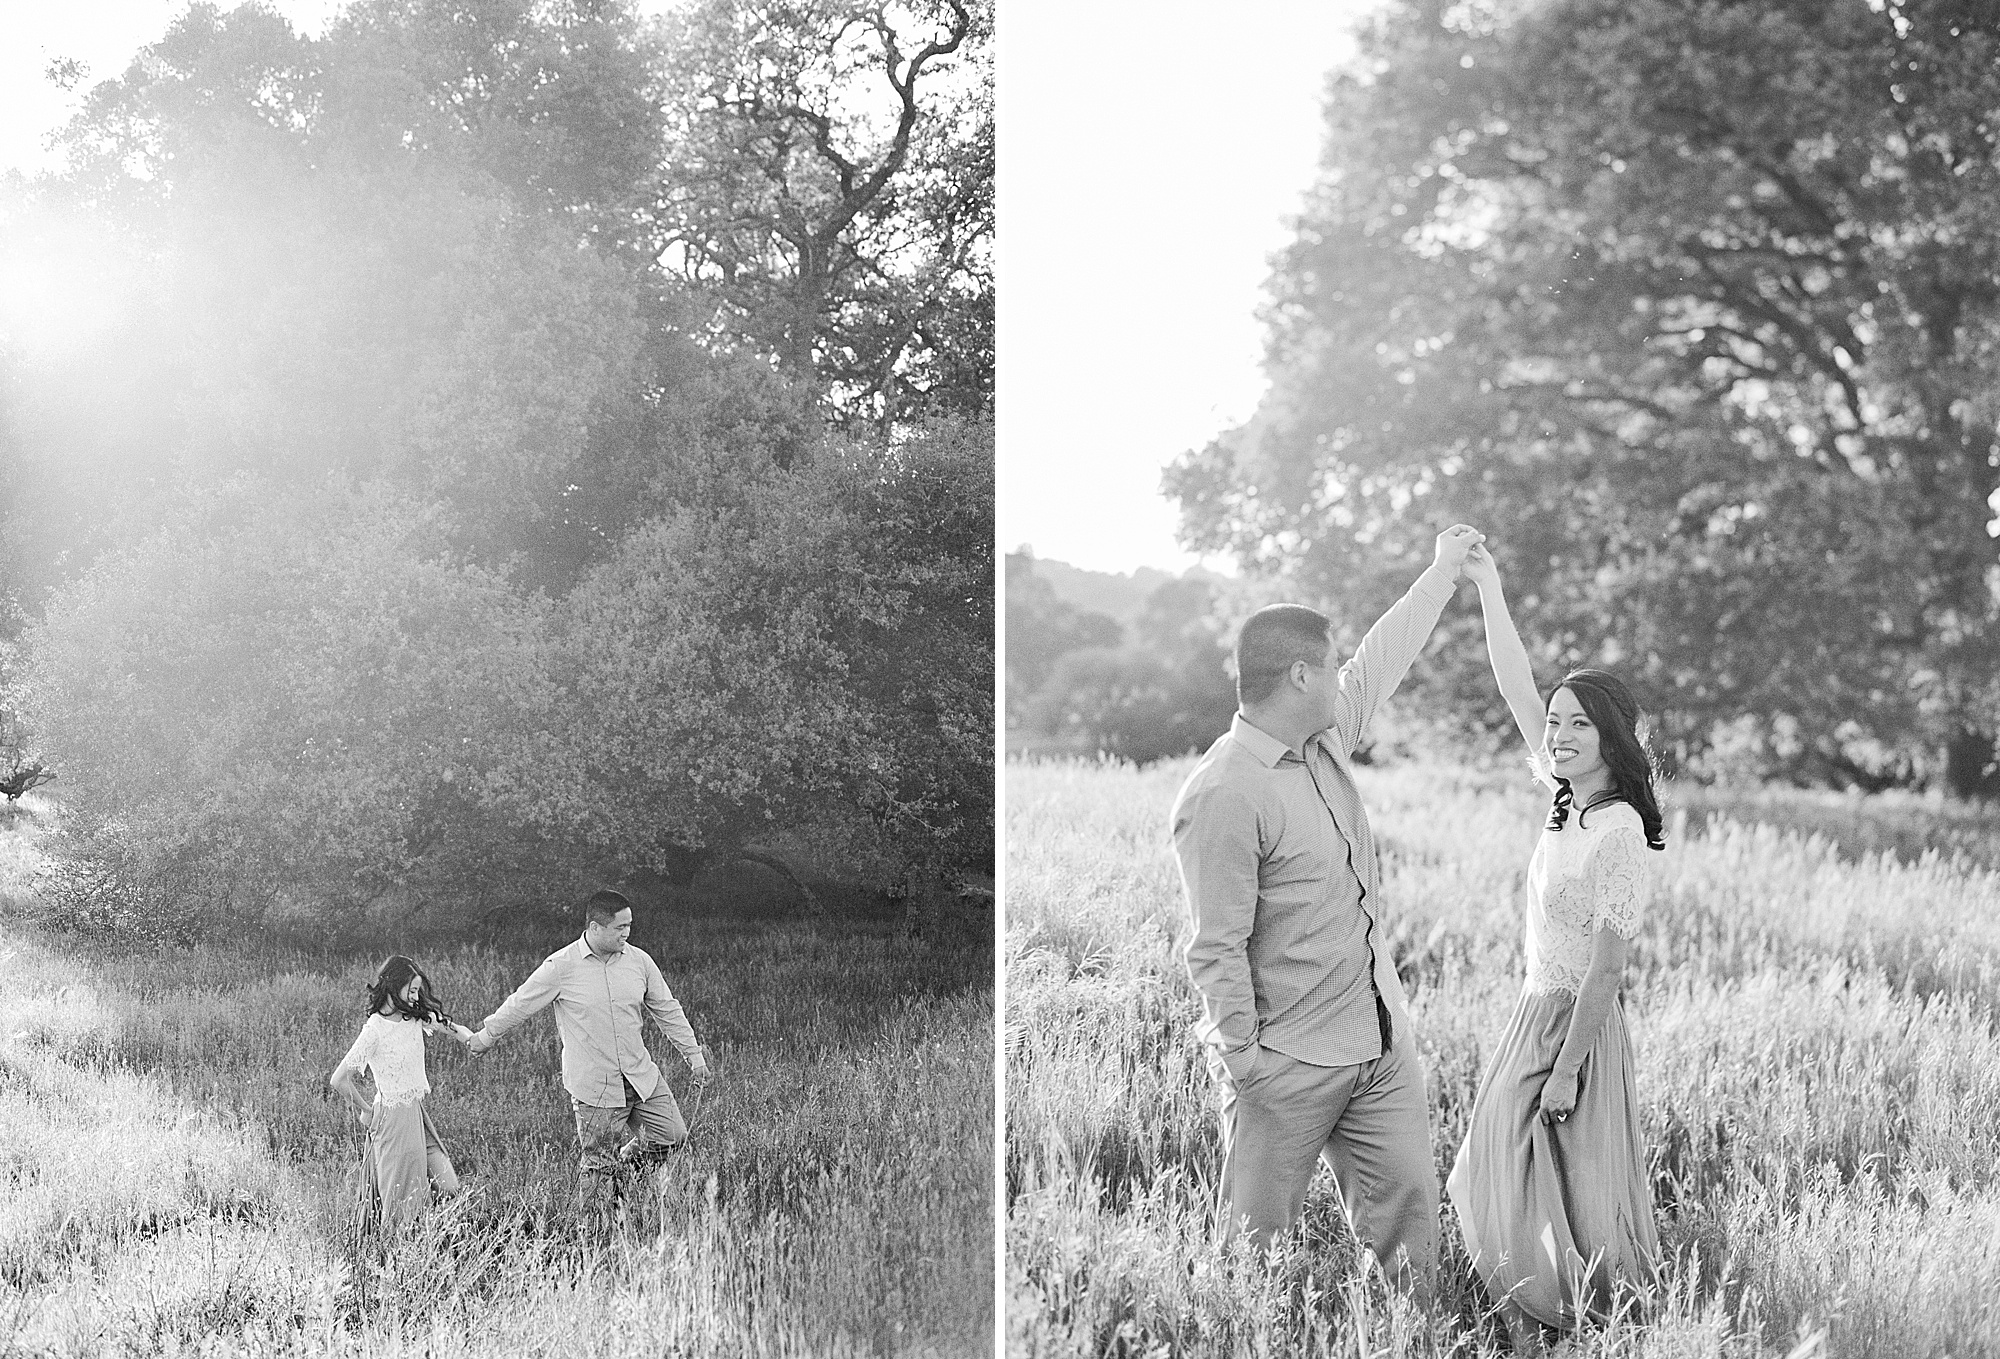 El Dorado Hills Engagement Session - Wendy and Danny - Ashley Baumgartner - Sacramento Wedding Photographer and Sacramento Wedding Photography - Bay Area Wedding Photographer_0010.jpg